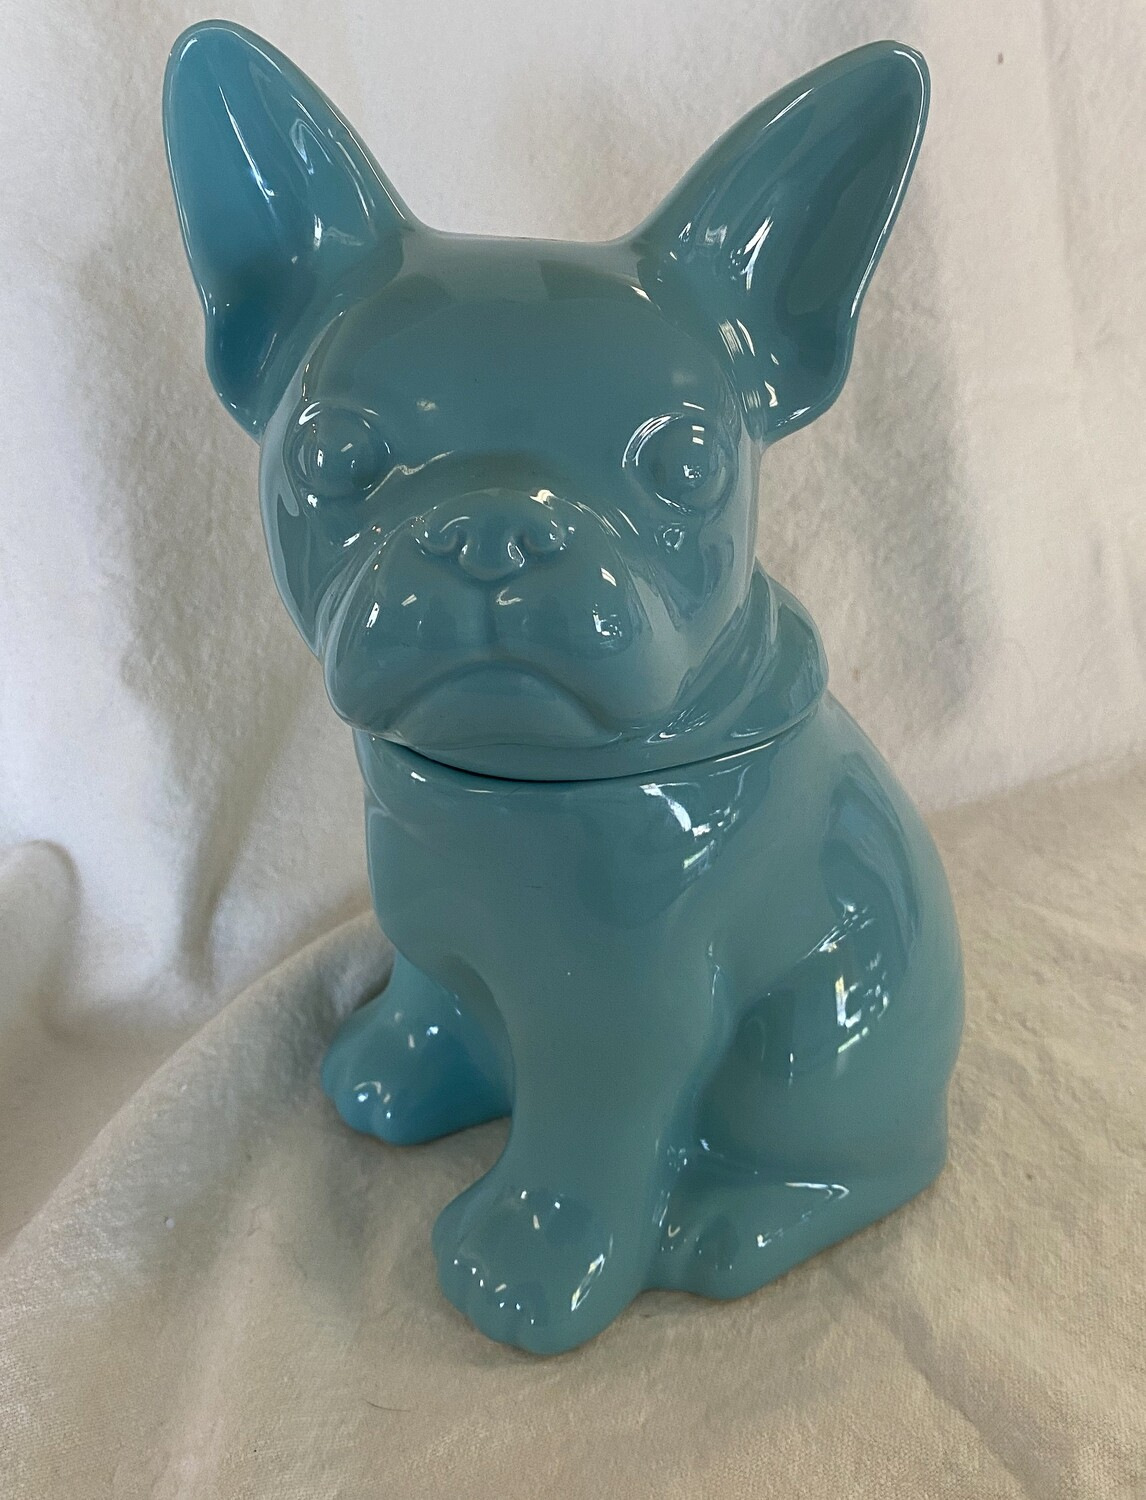 Threshold Teal Blue French Bulldog Cookie Jar